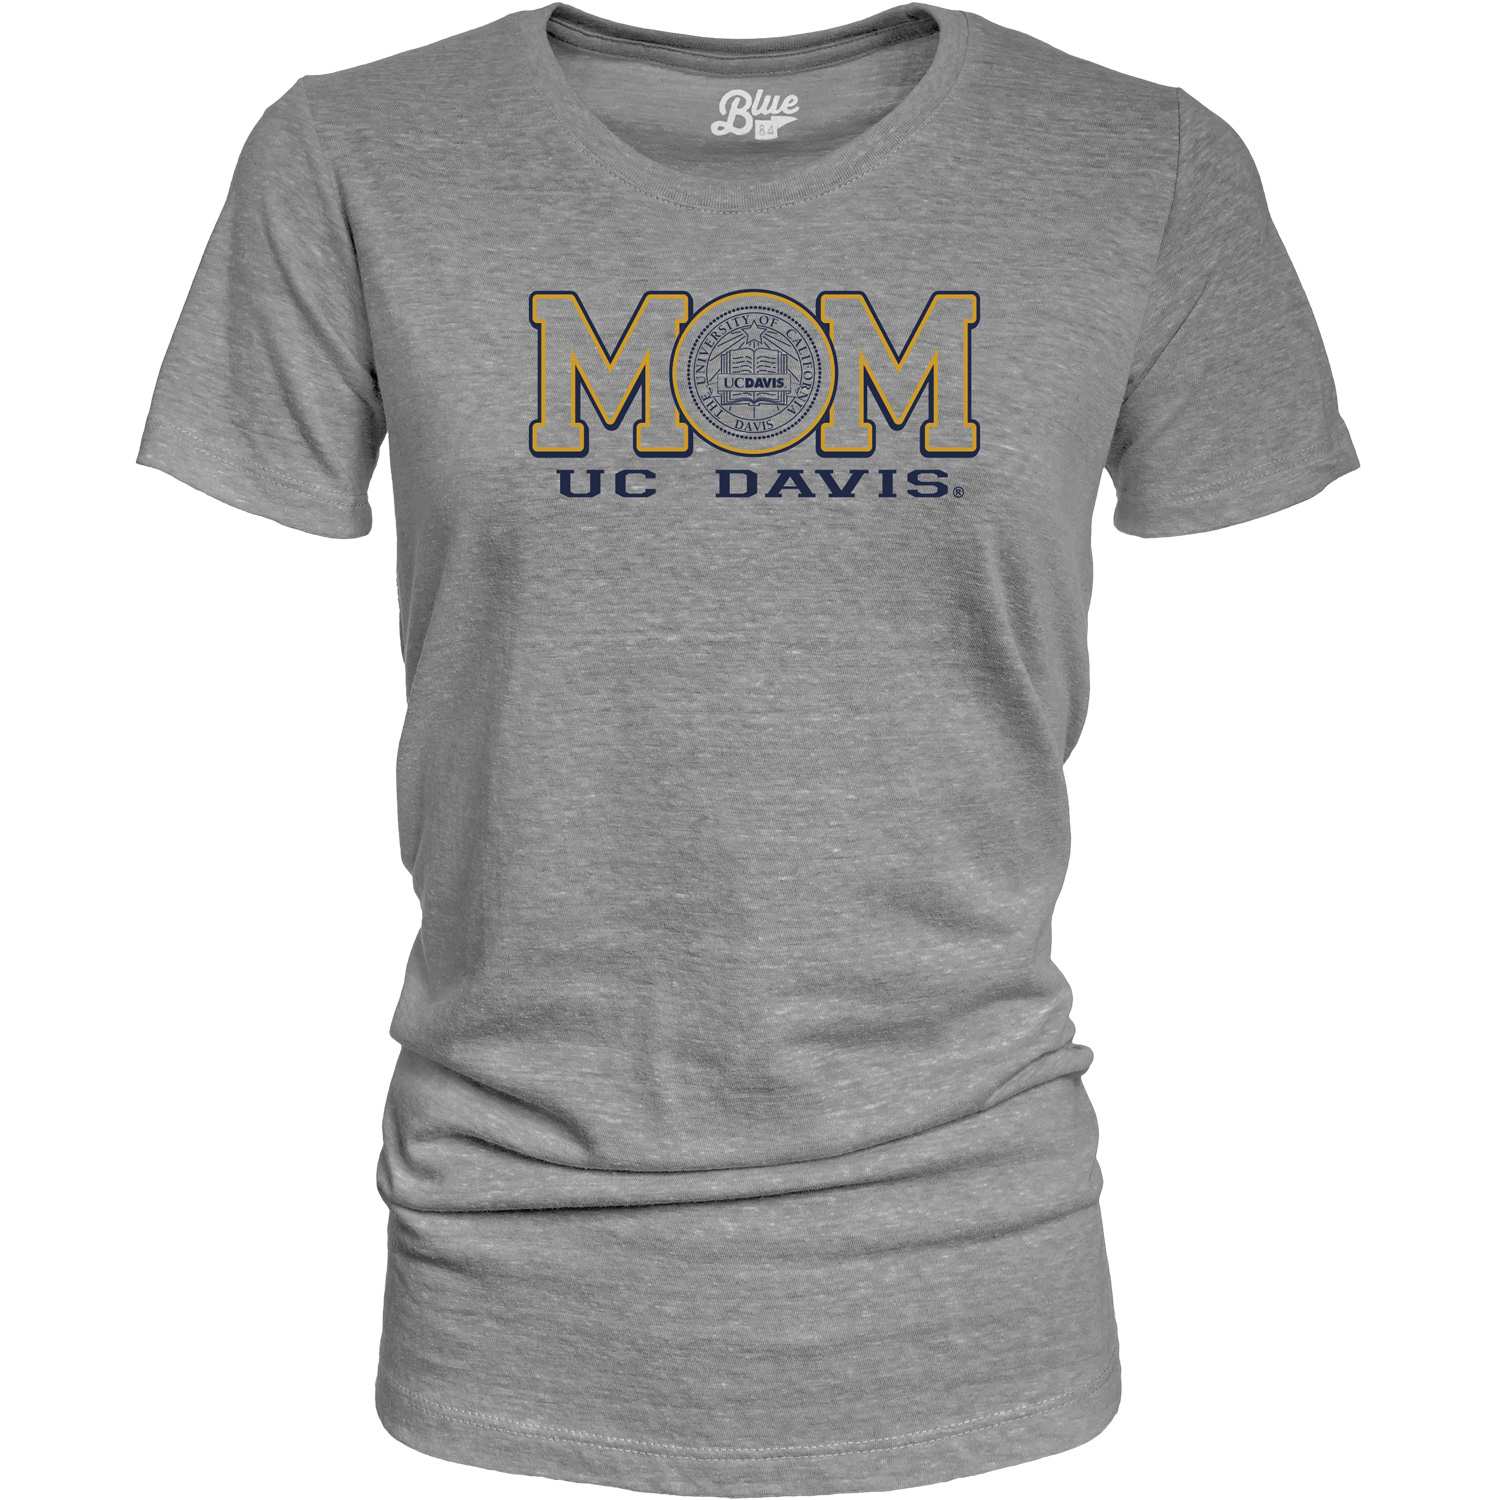 Blue 84 UC Davis Mom with School Seal Graphite